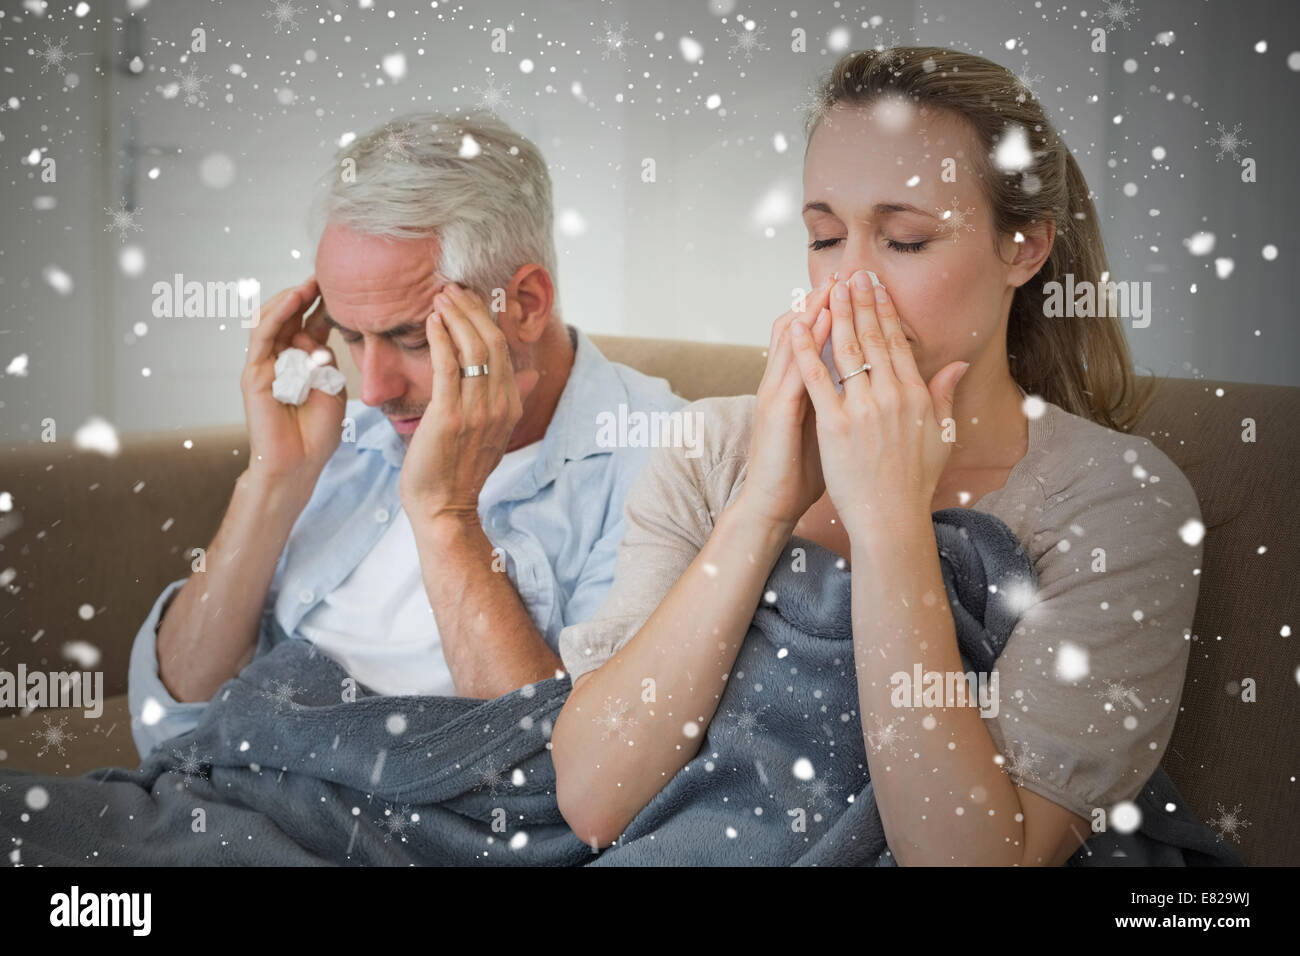 Composite image of sick couple sitting on the couch under a blanket - Stock Image